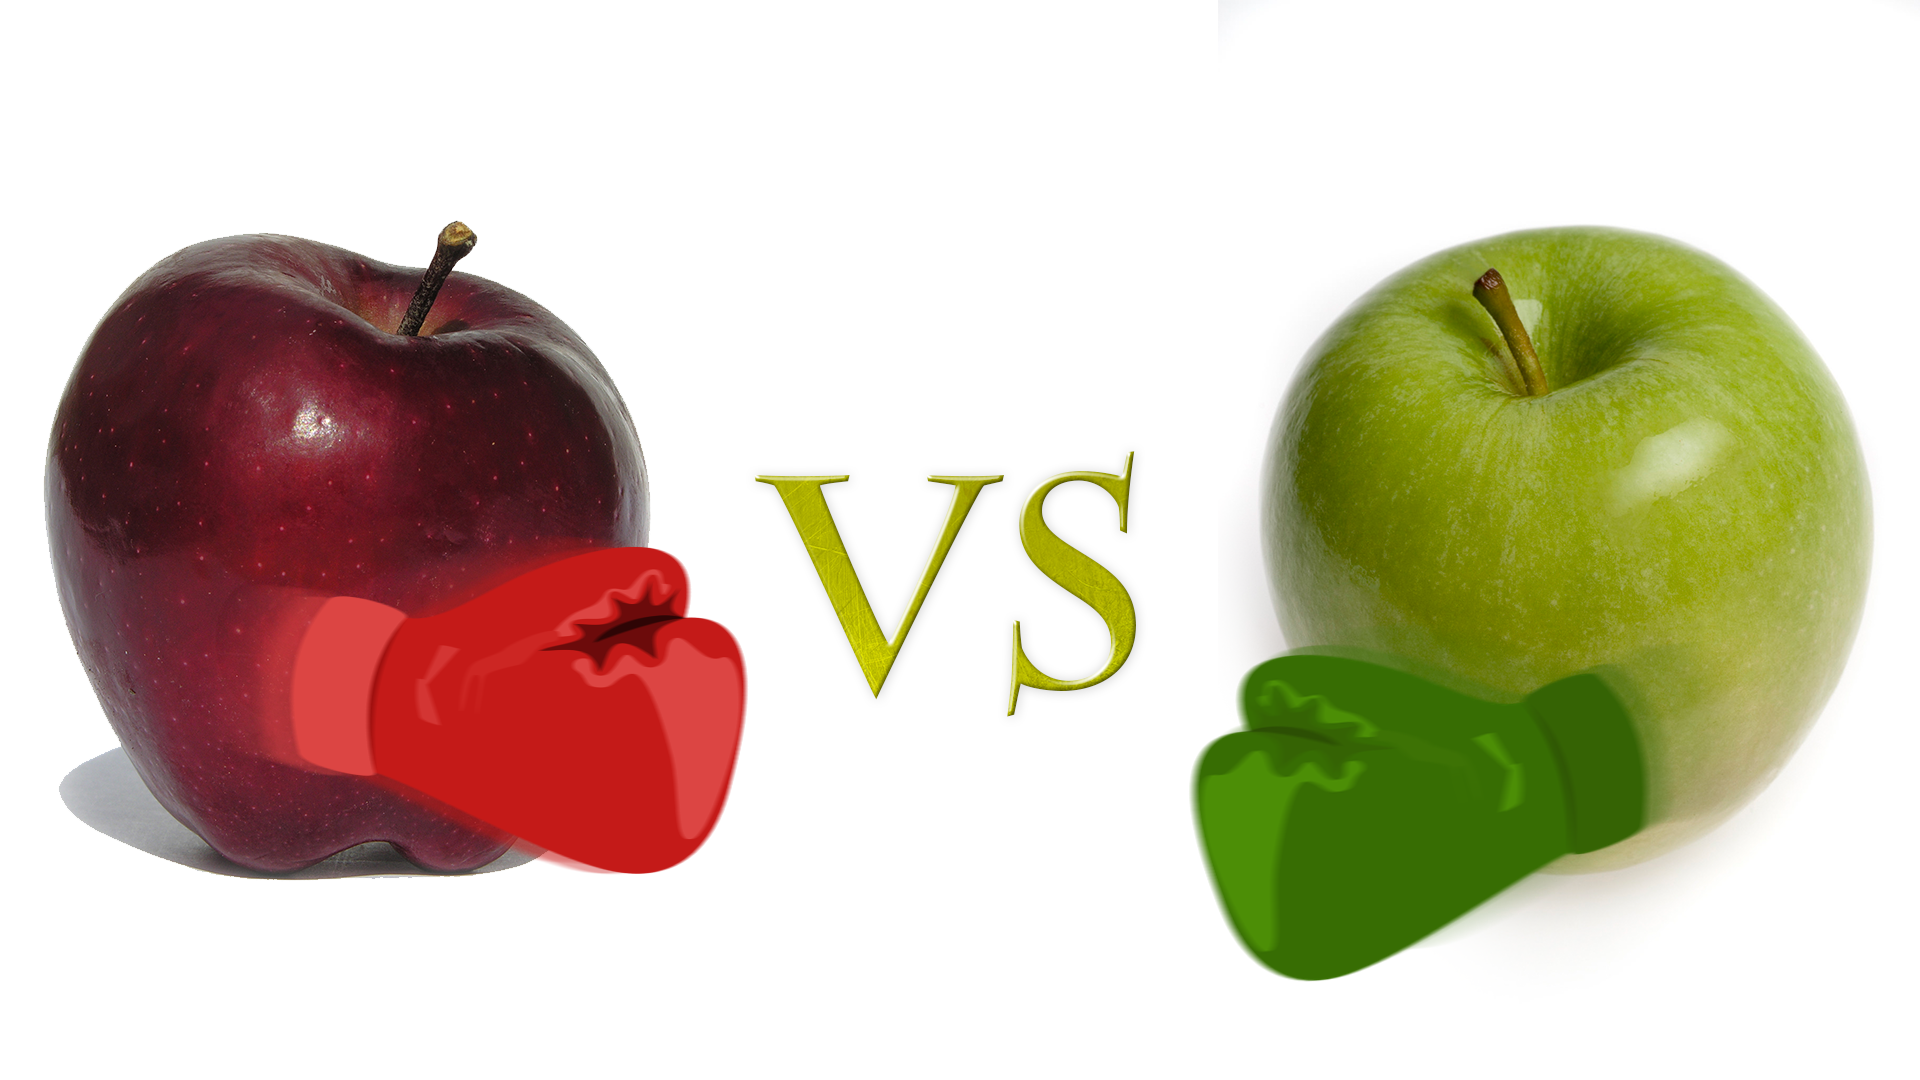 Red apple and green apple prepping for a fight